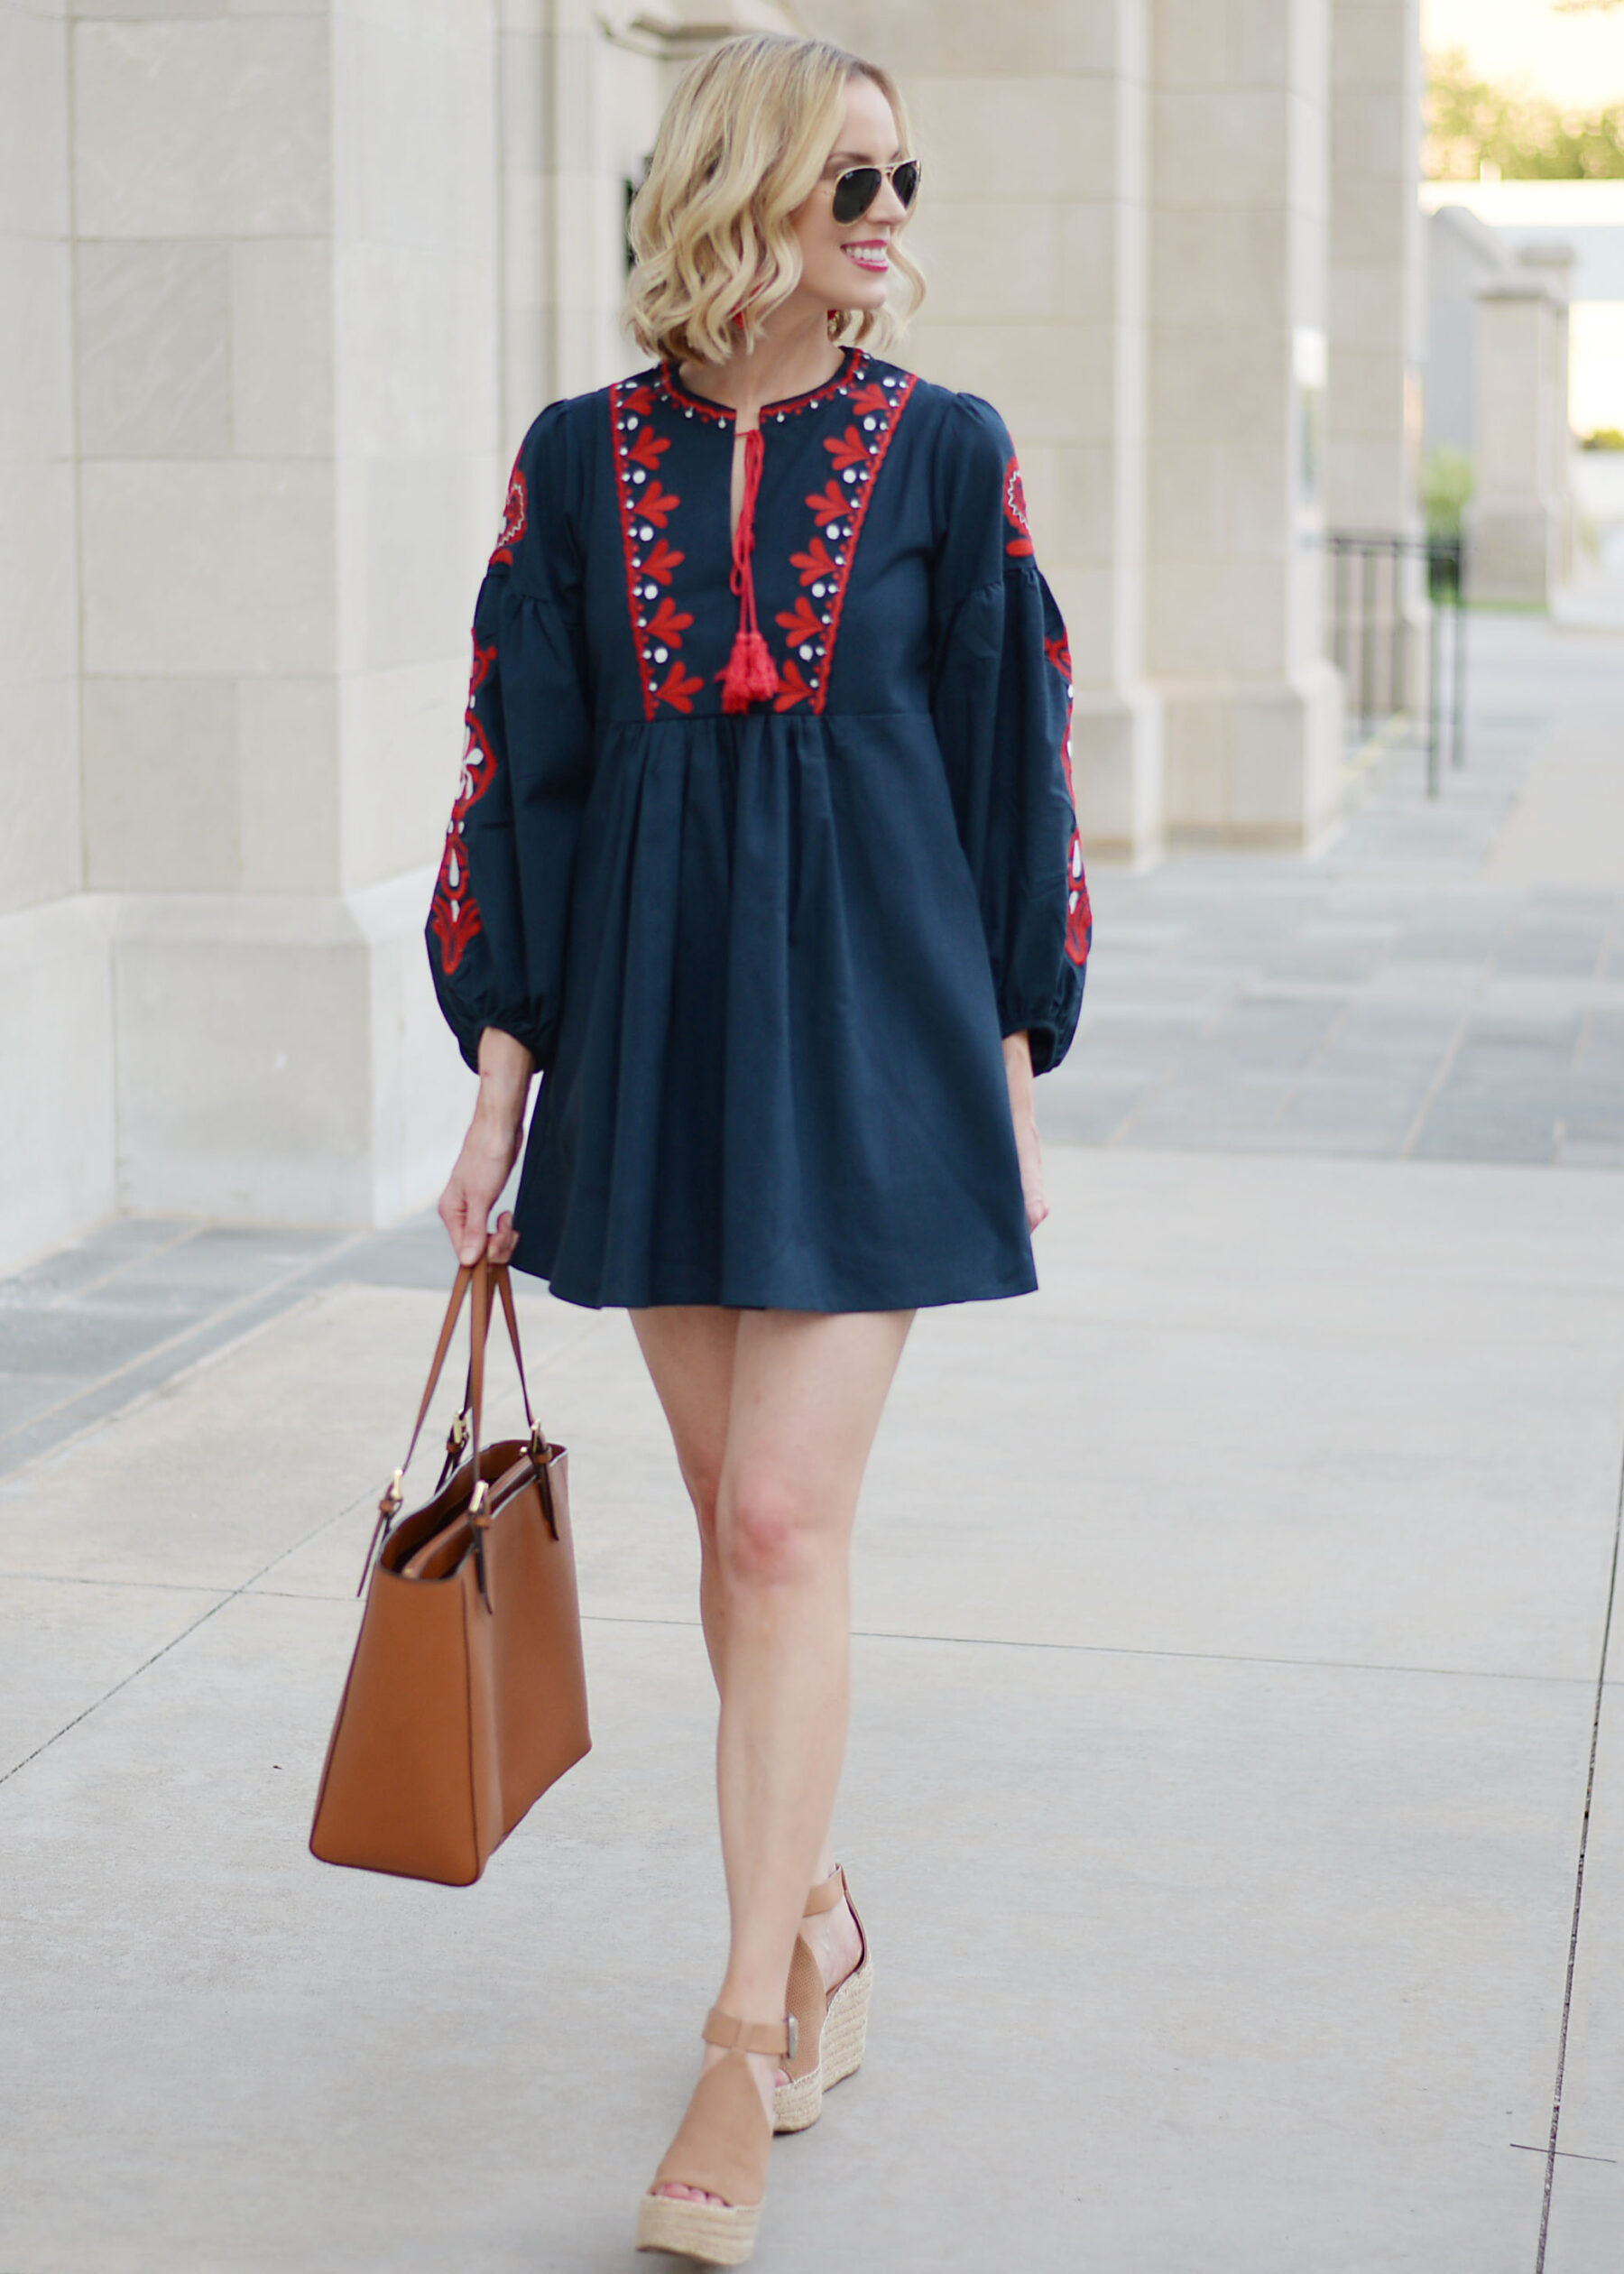 ... navy mini dress with red embroidery ...